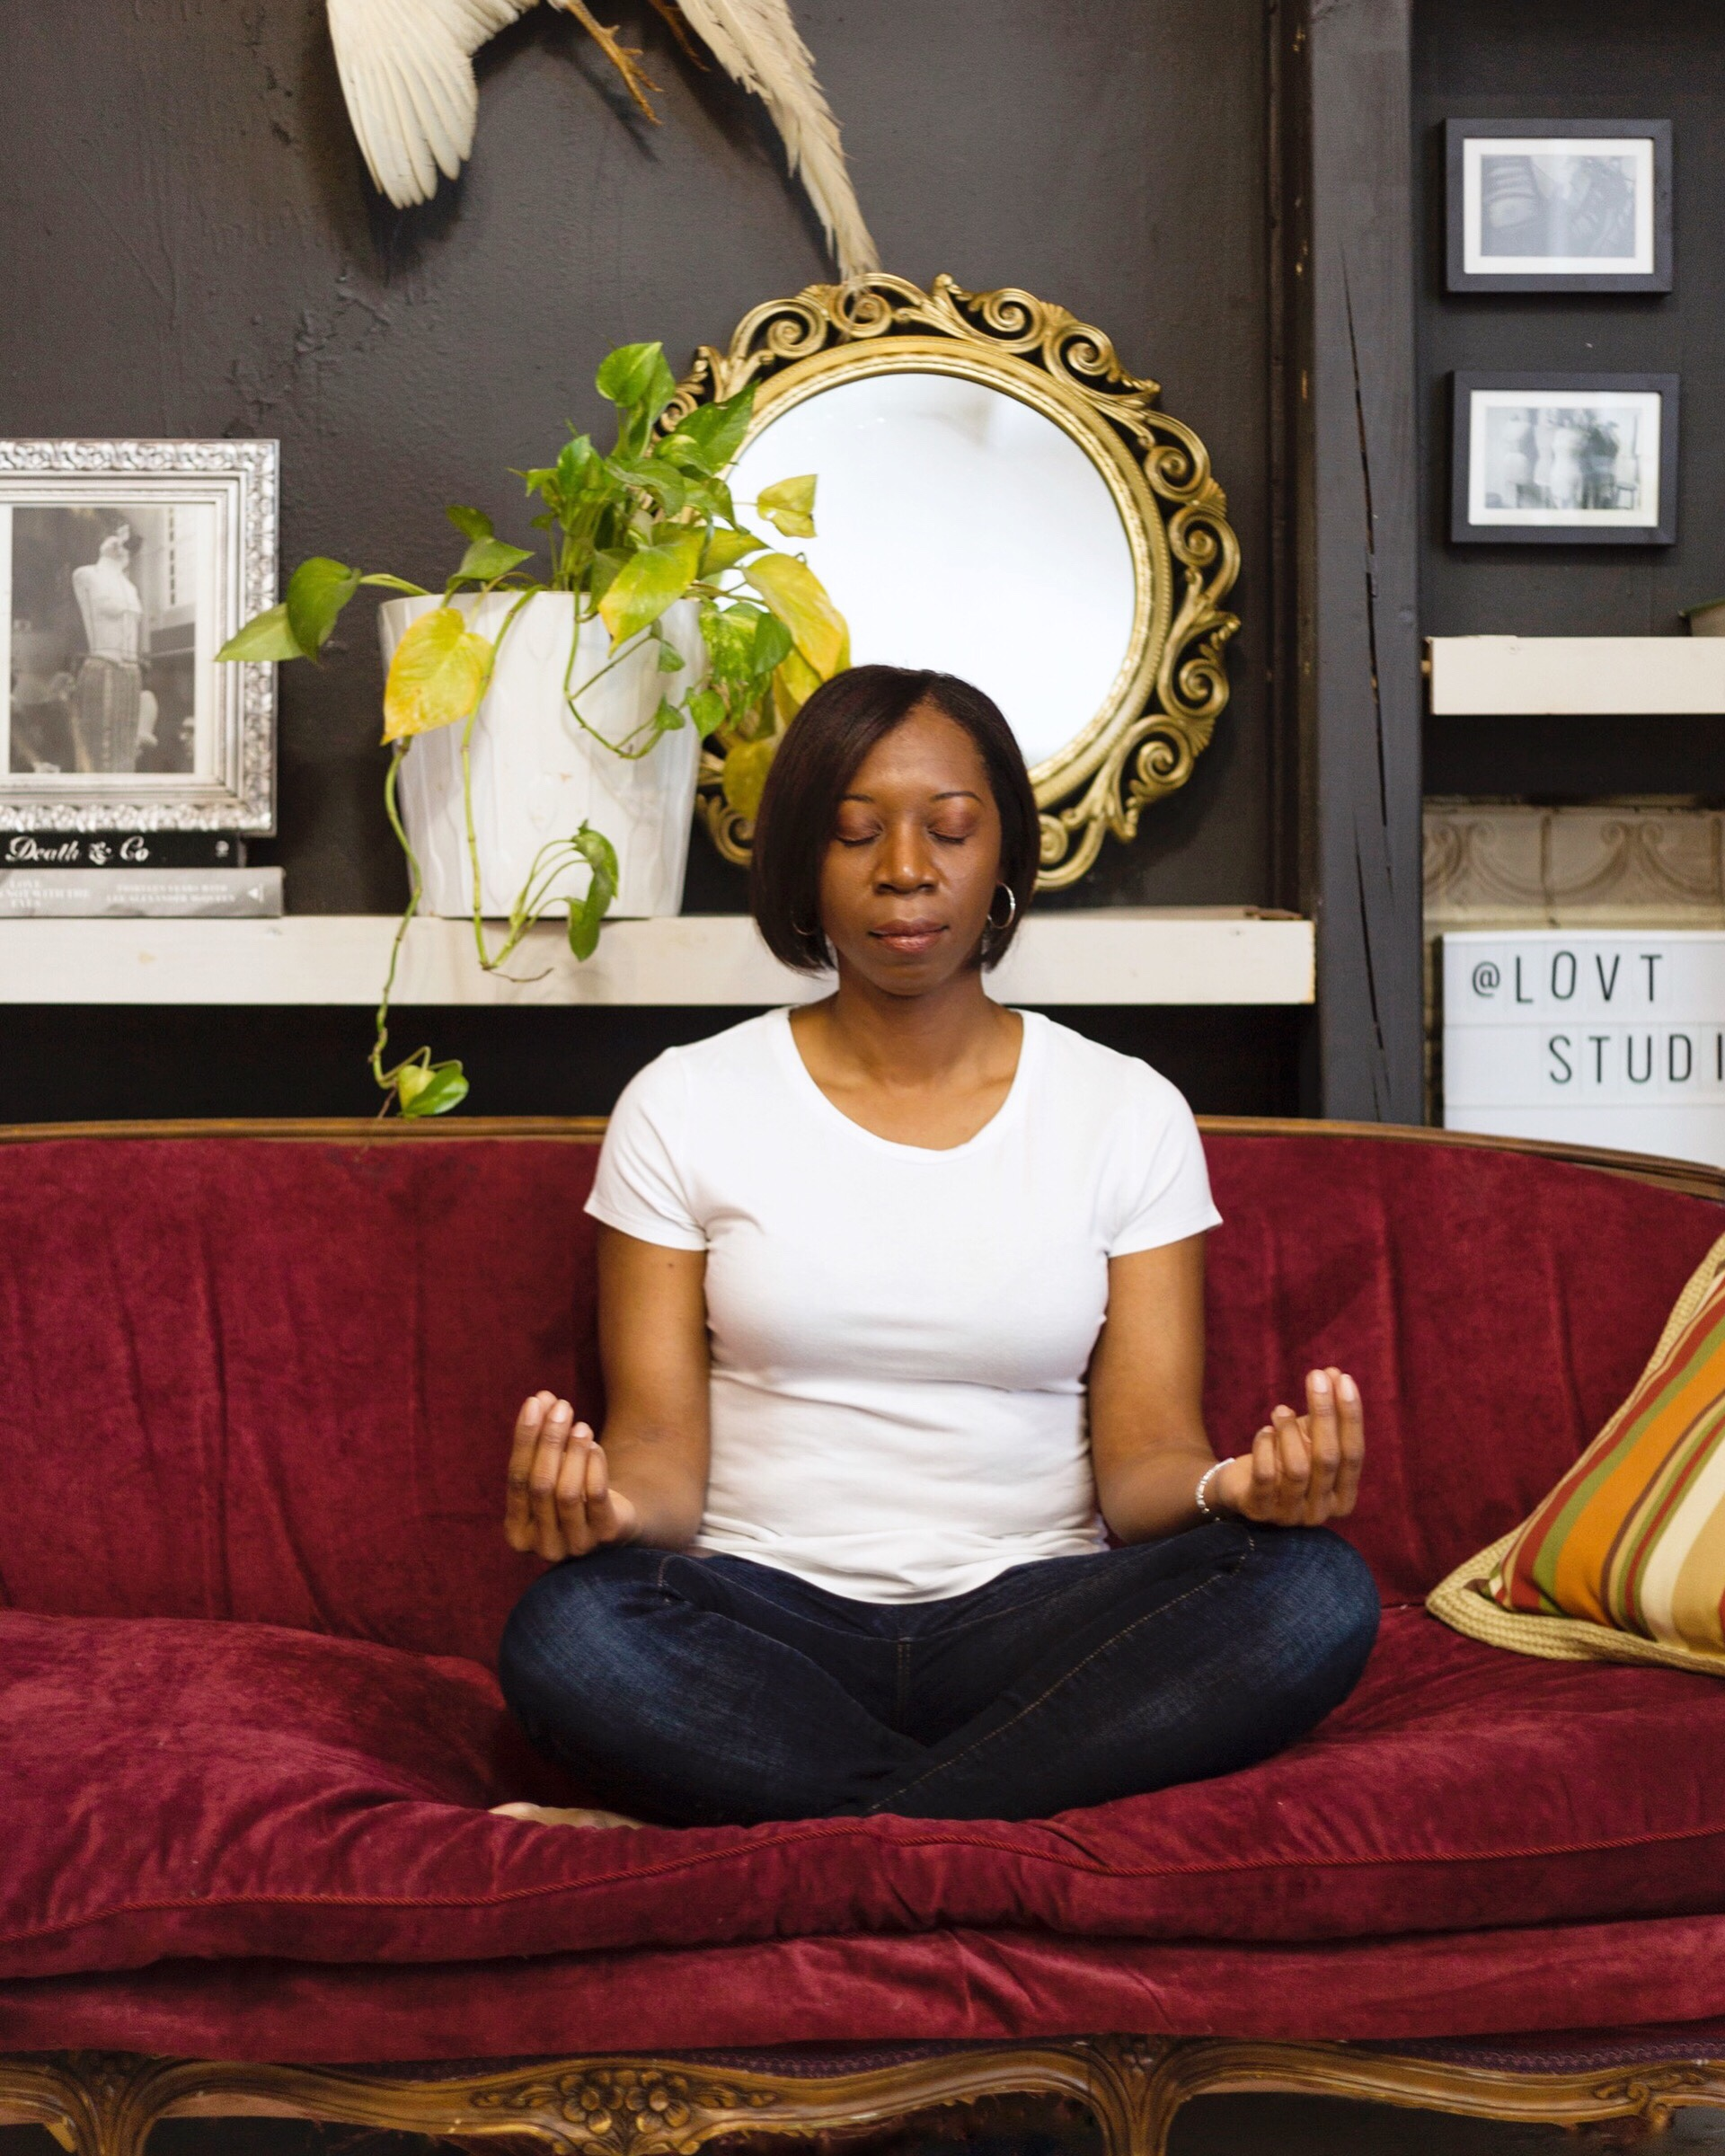 Woman sitting cross-legged on sofa with eyes closed in meditation